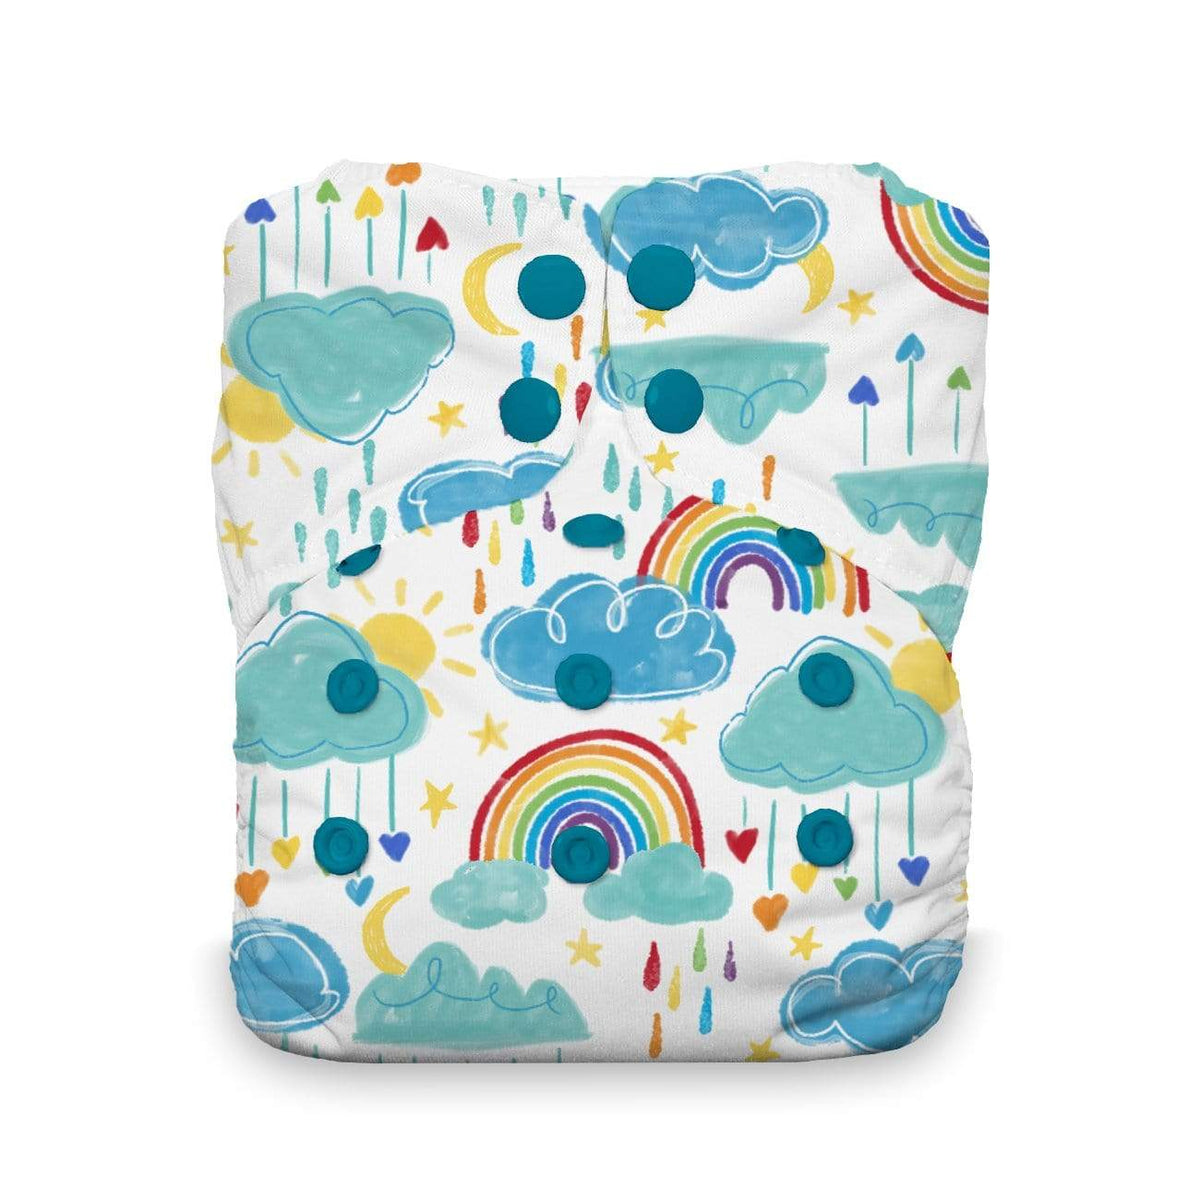 Thirsties Stay Dry Natural Snap One Size All in One Diaper - Rainbow